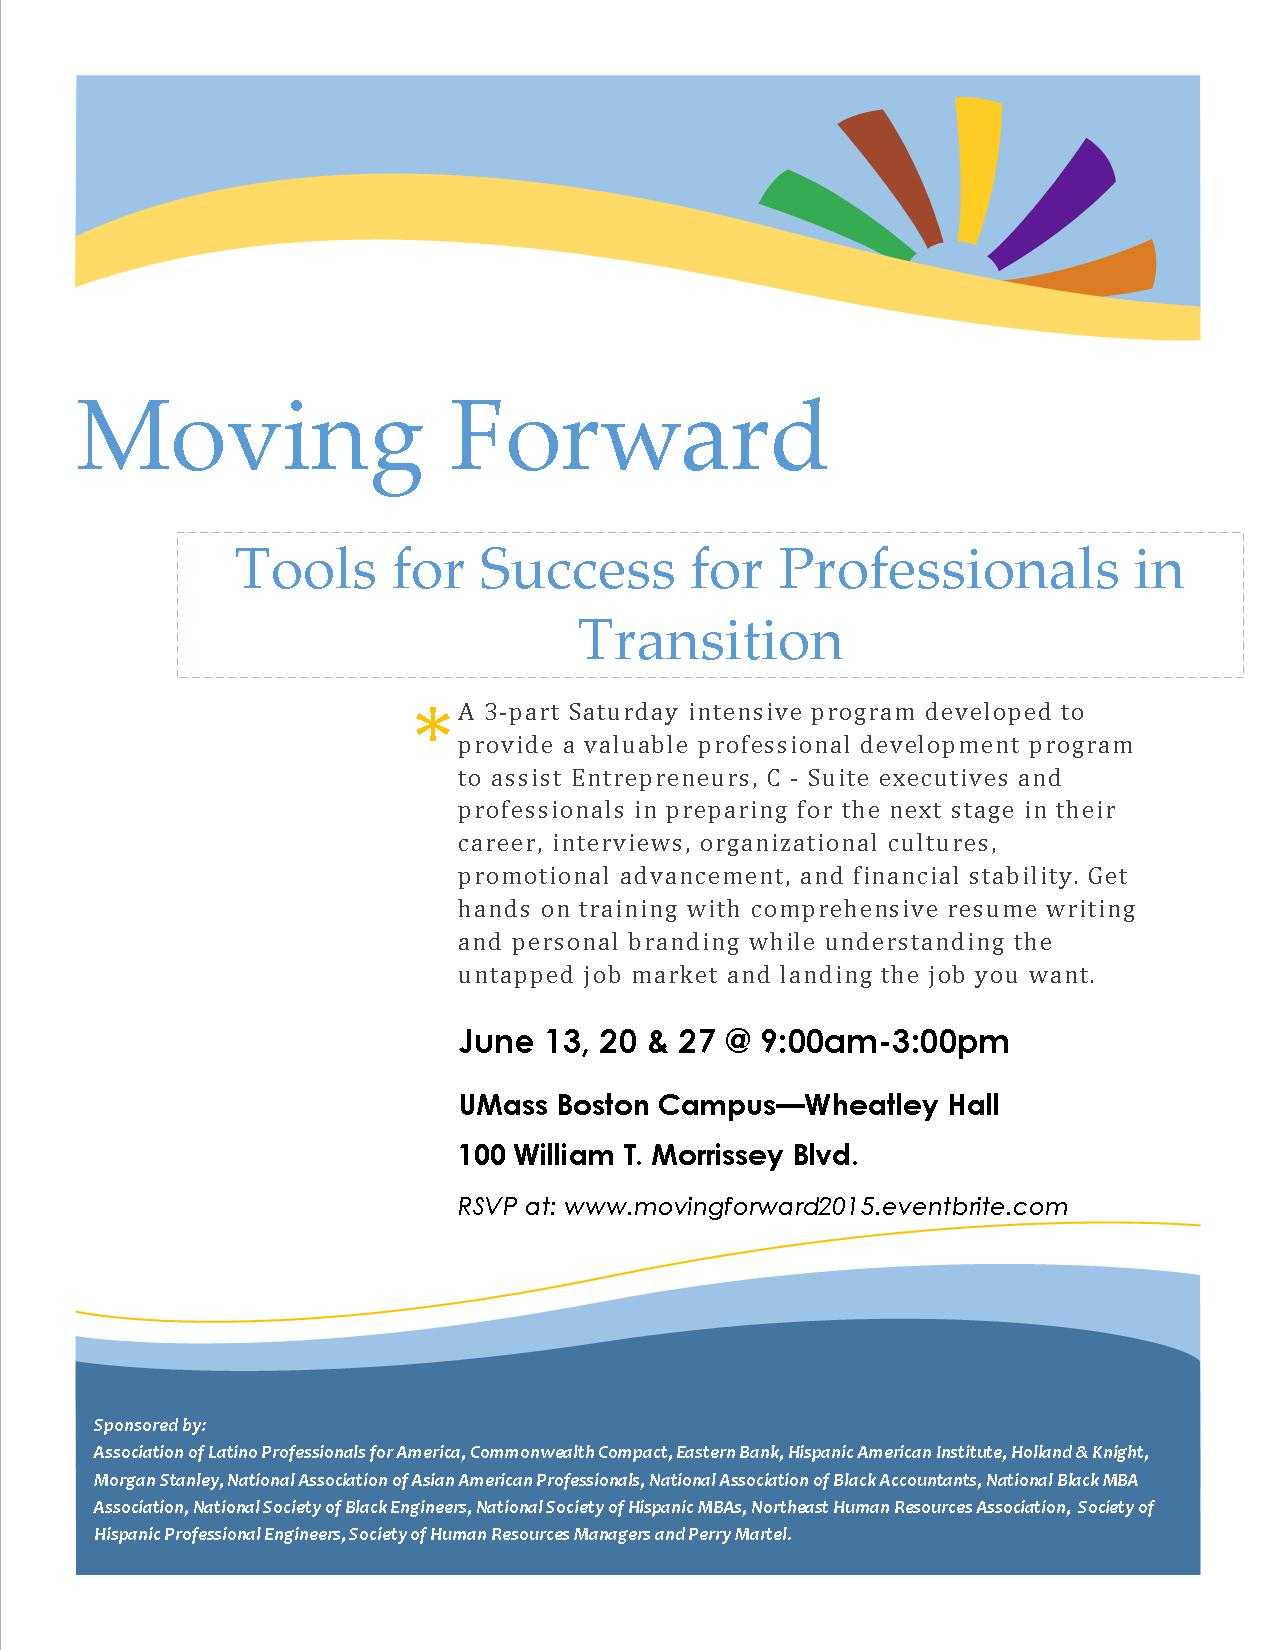 Moving Forward Tools For Professional Success